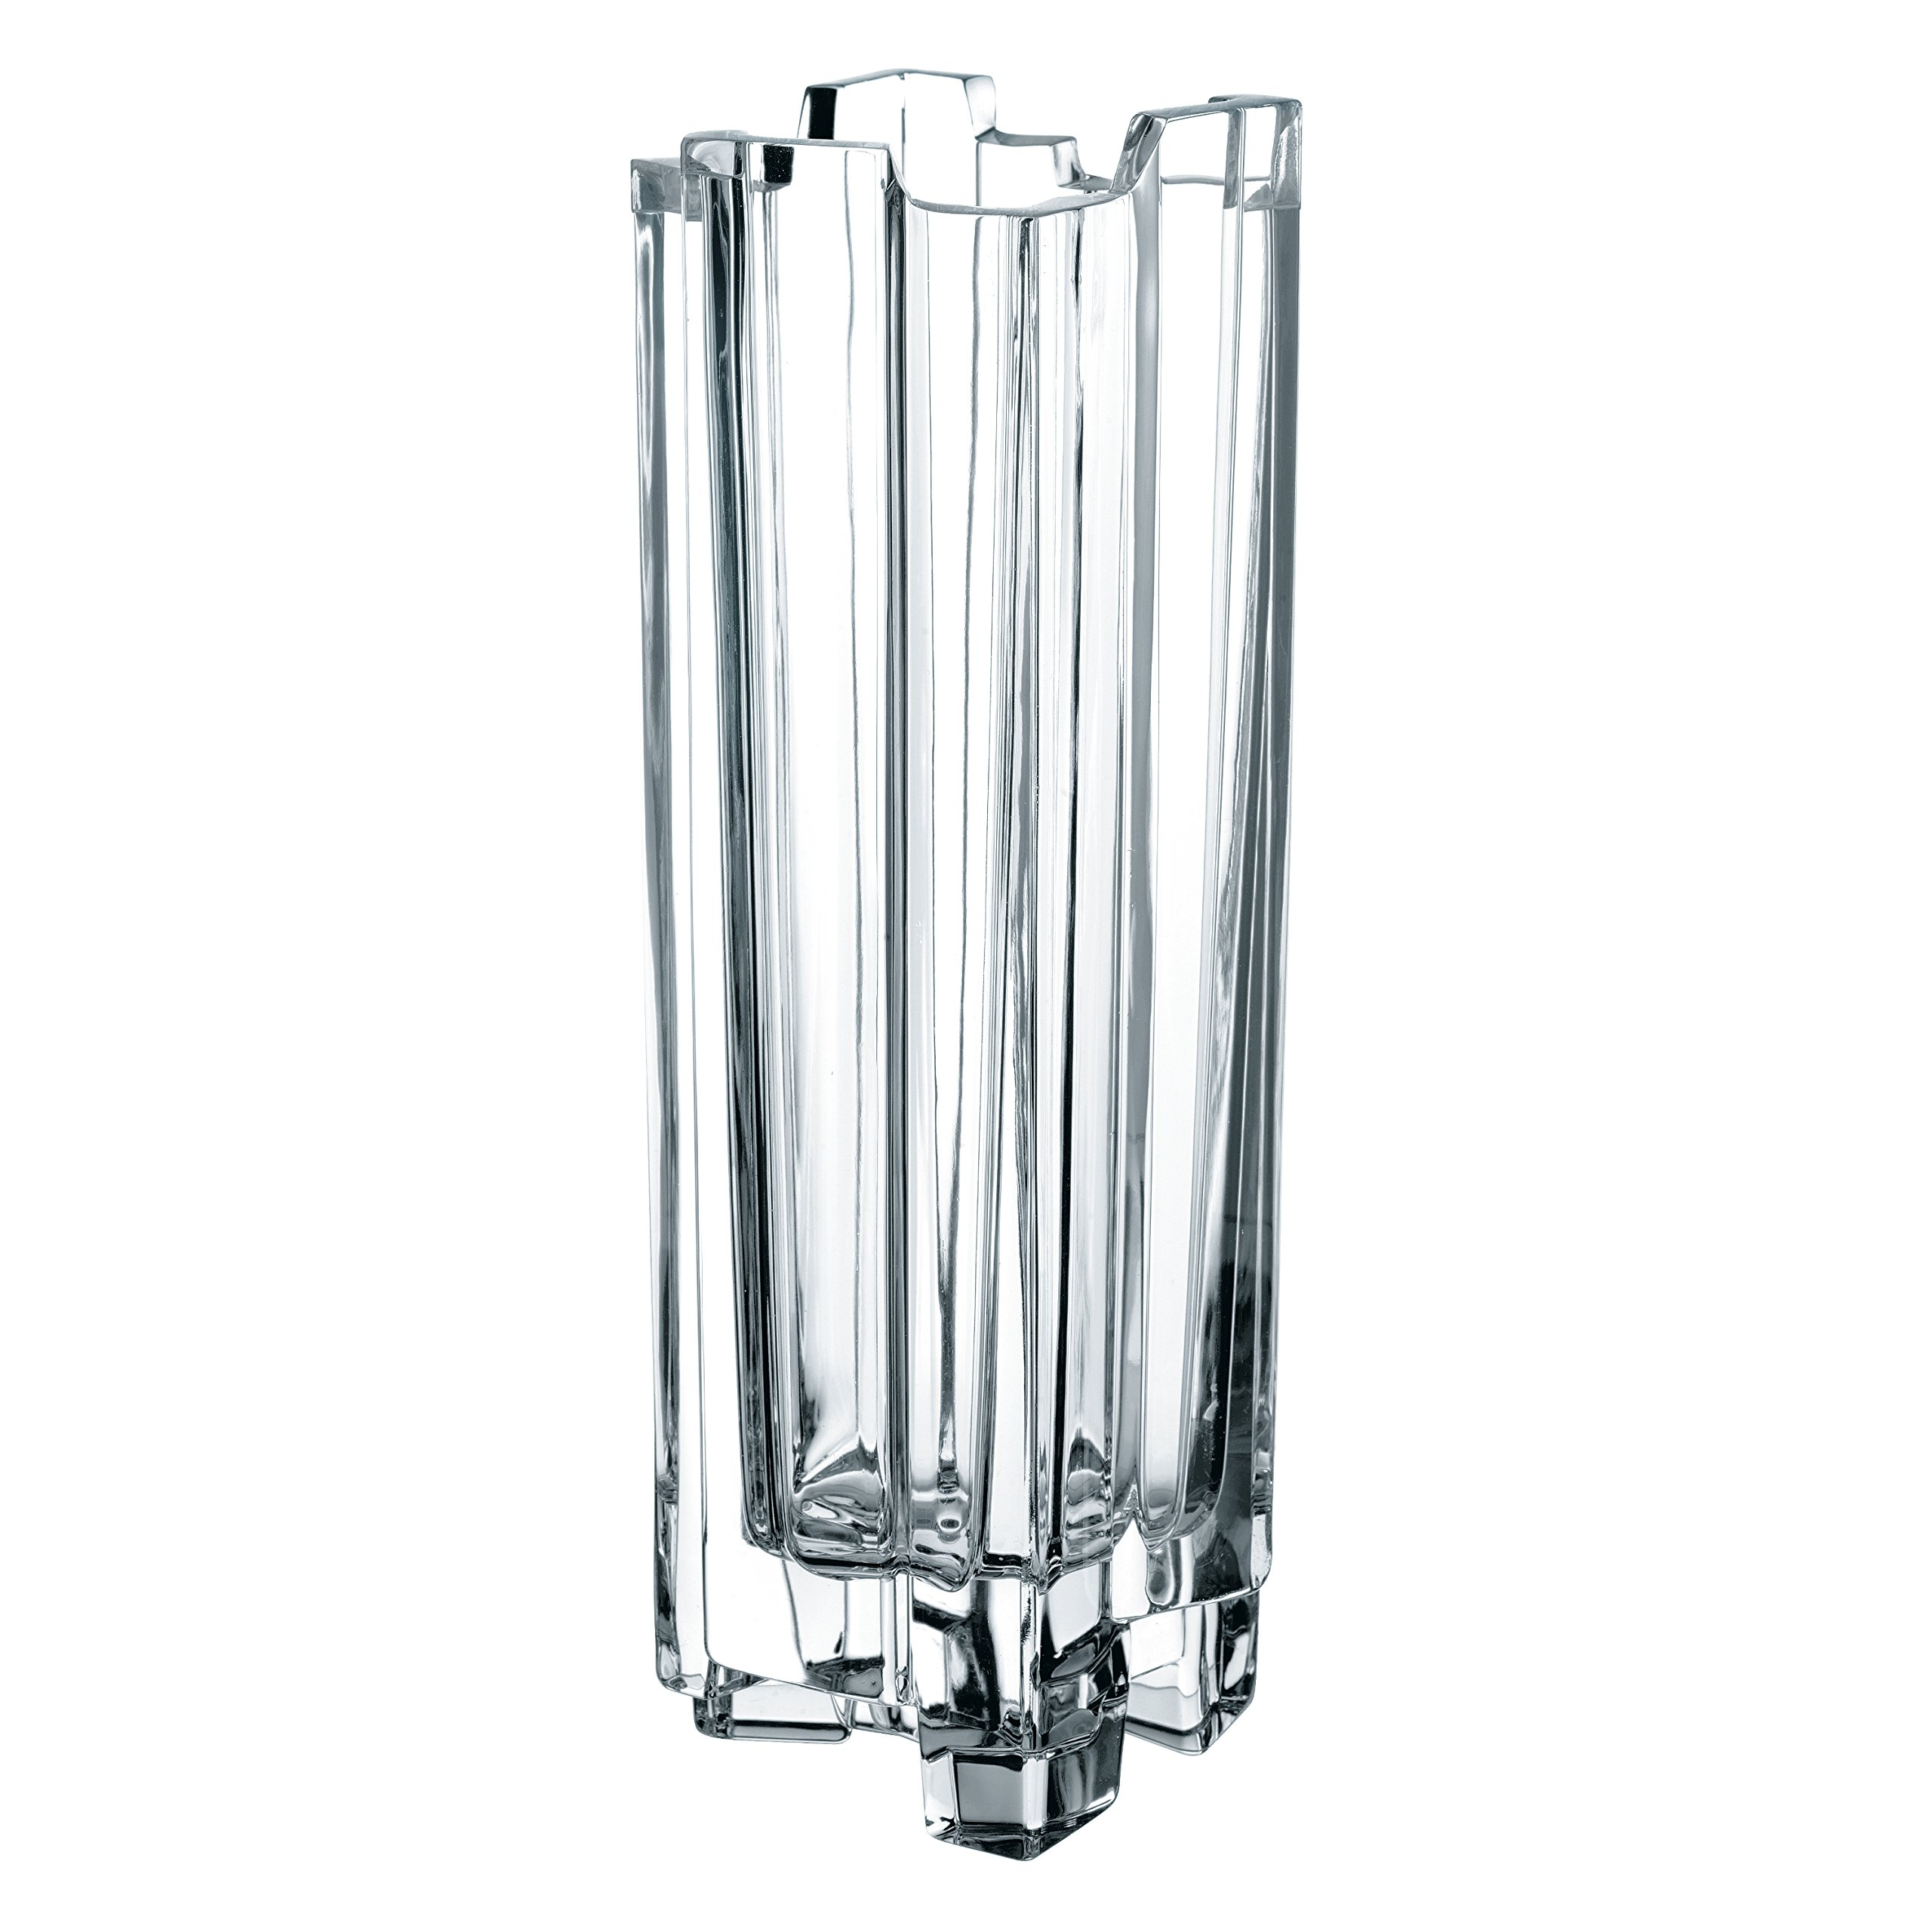 Nachtmann Hikari Crystal Decorative Vase by Nachtmann - The Life Style Division of Riedel Glass Works